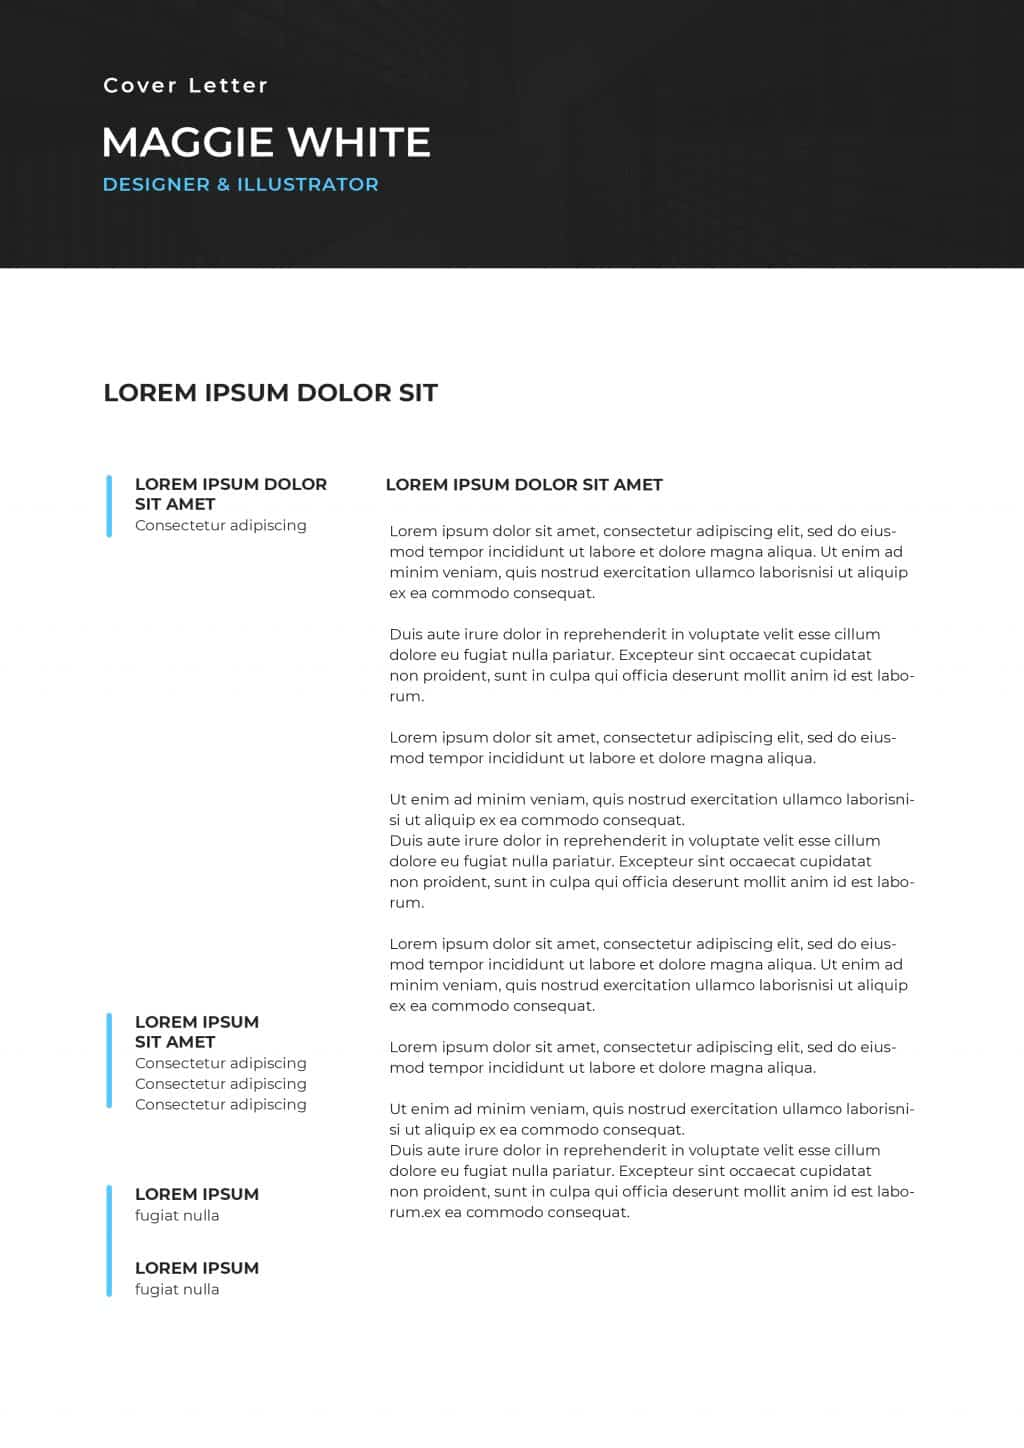 Best College Resume Templates 2020: 5 colors - $8 - cover letter 4